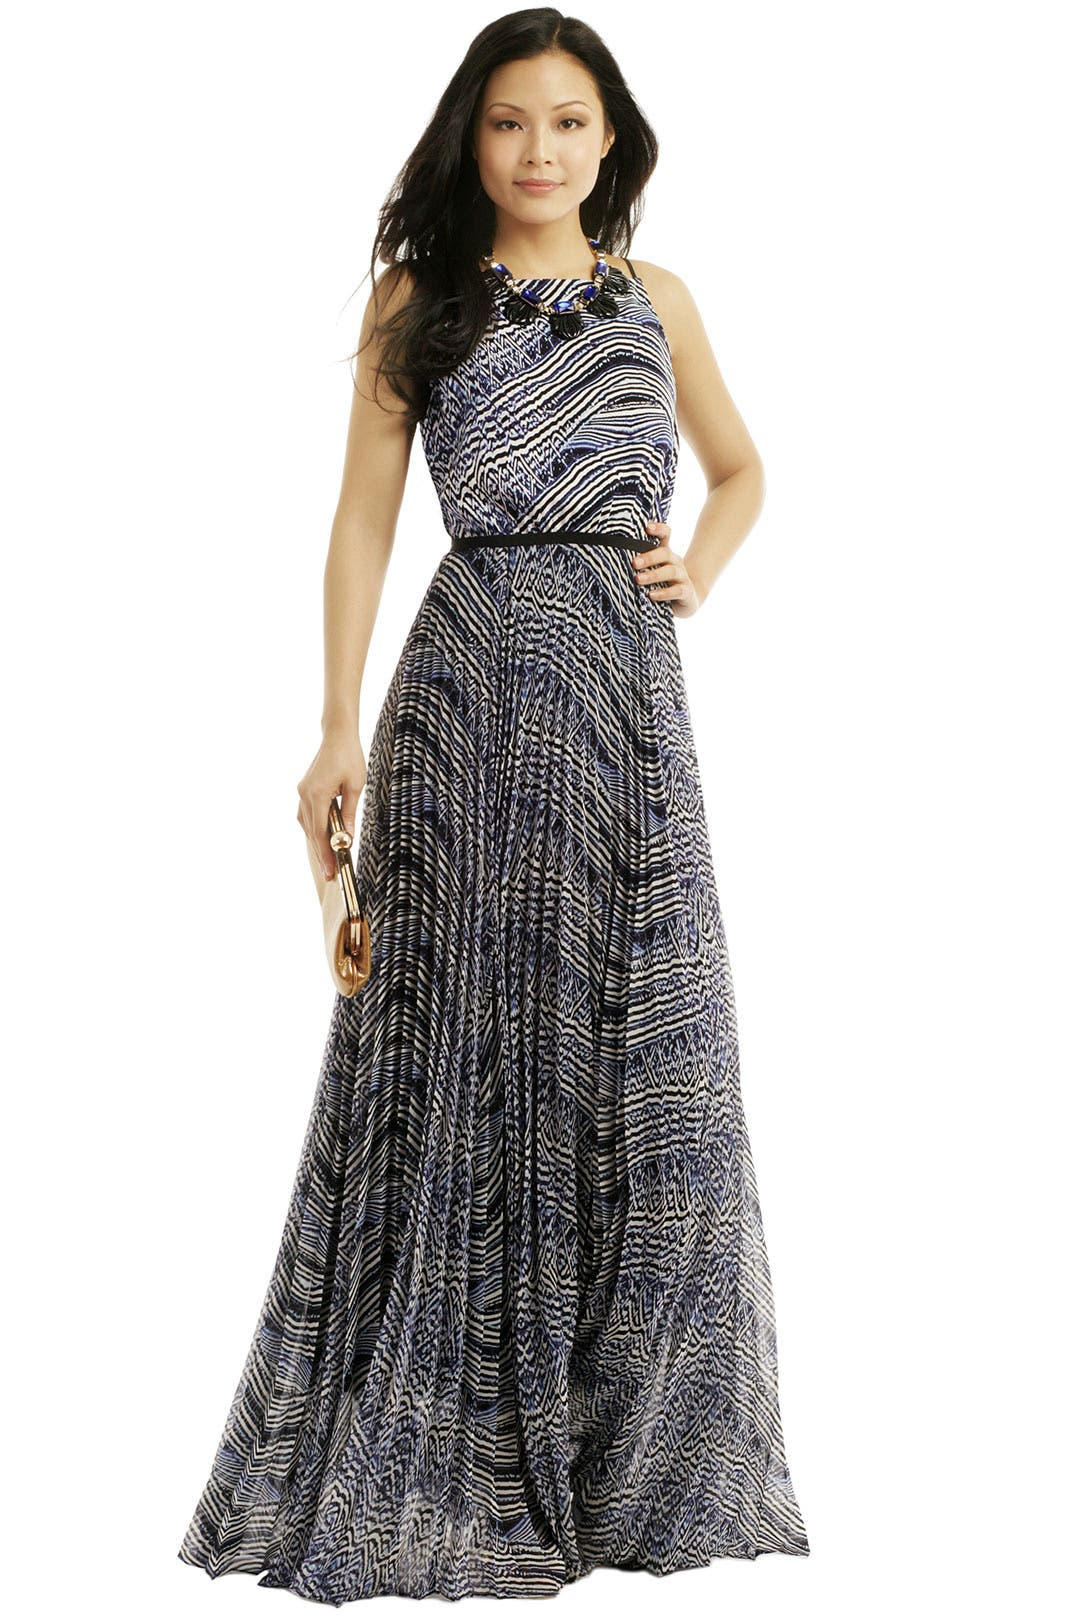 Crew Cutout Maxi Dress by Sachin & Babi for $100 - $115 | Rent the ...